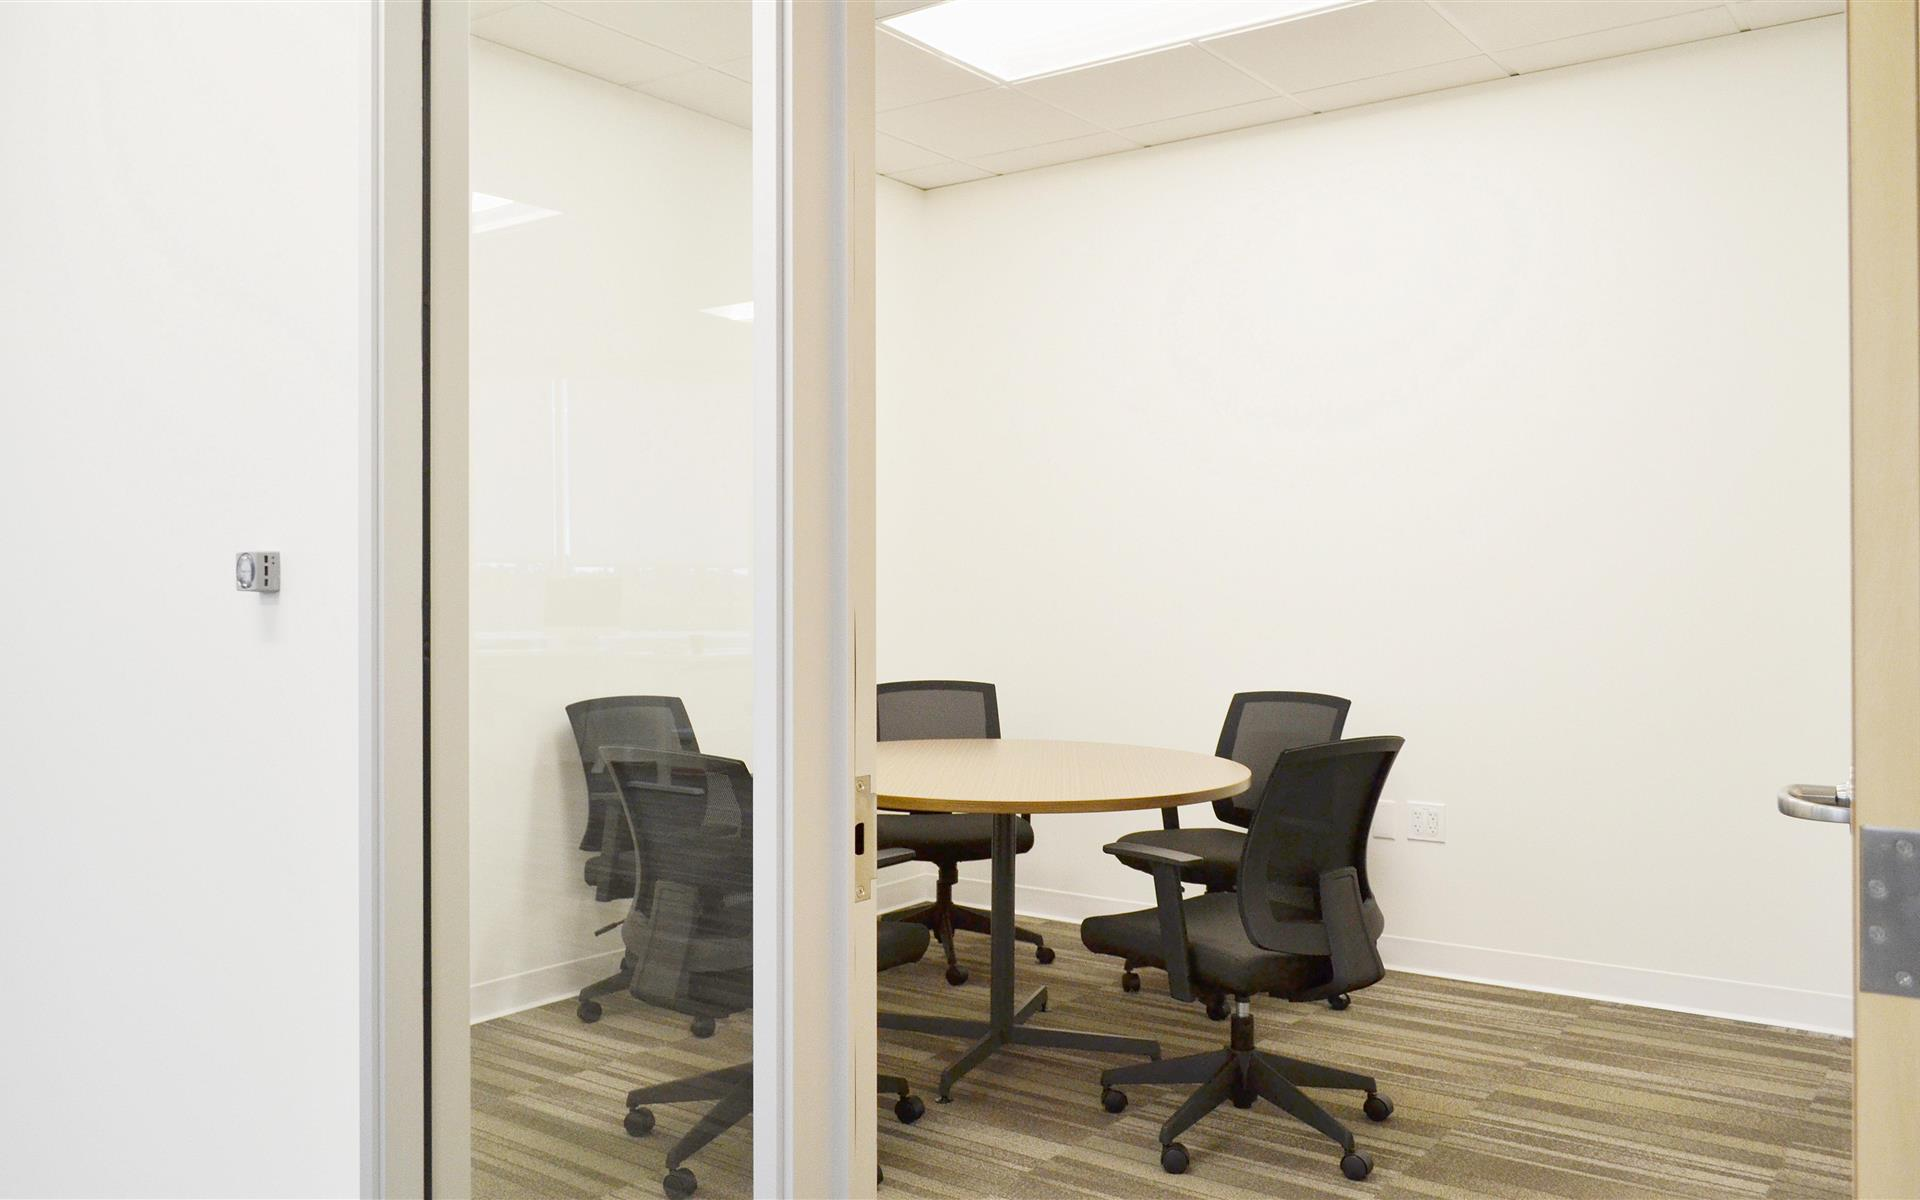 RobotX Space - Meeting Room 4